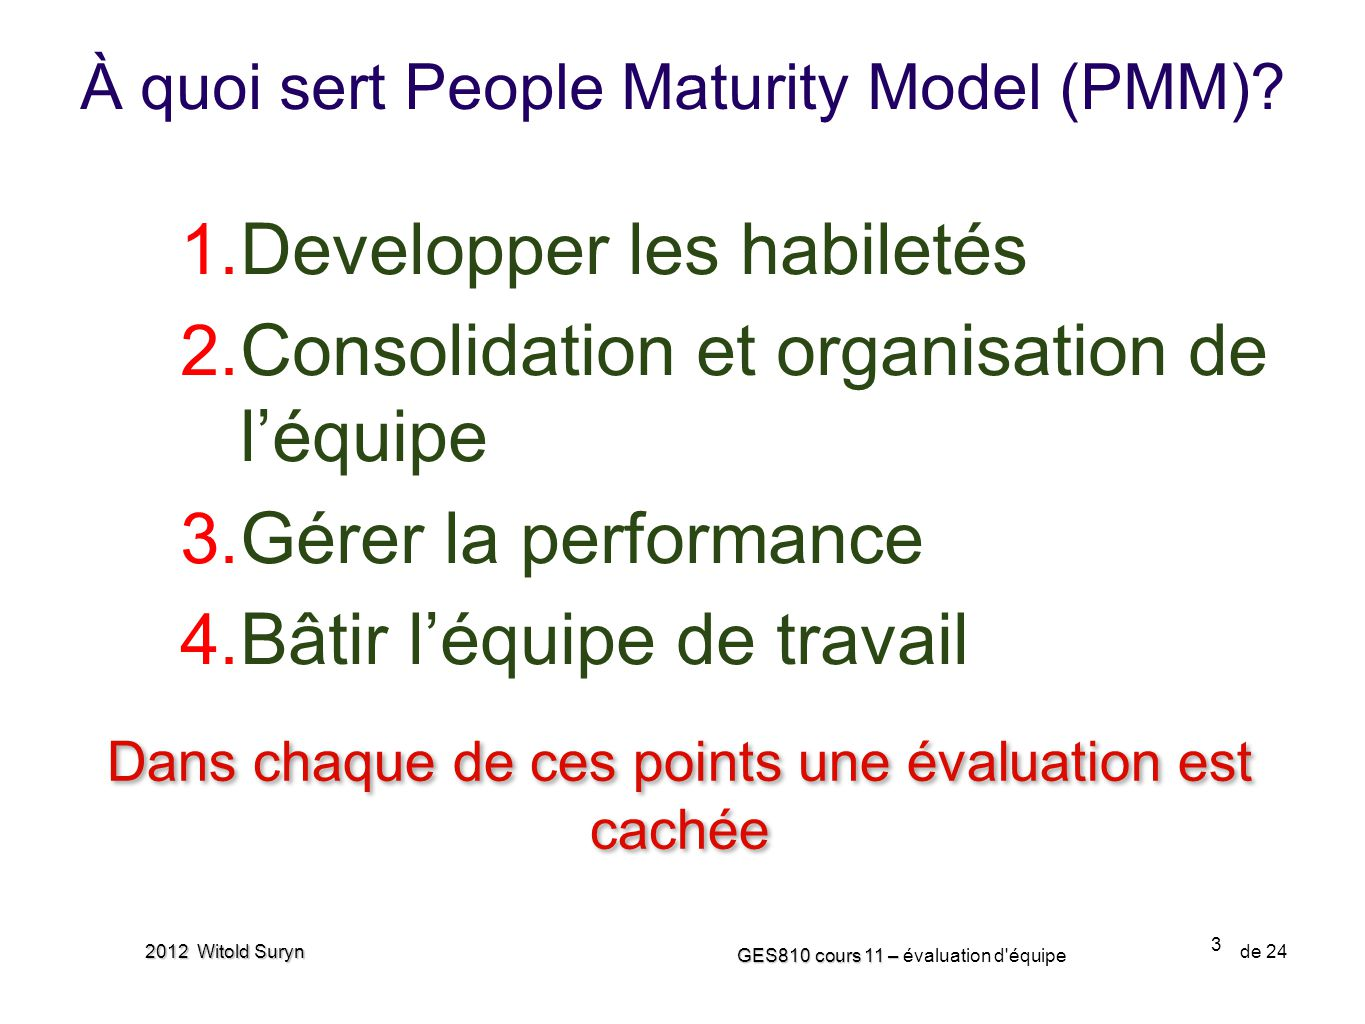 À quoi sert People Maturity Model (PMM)